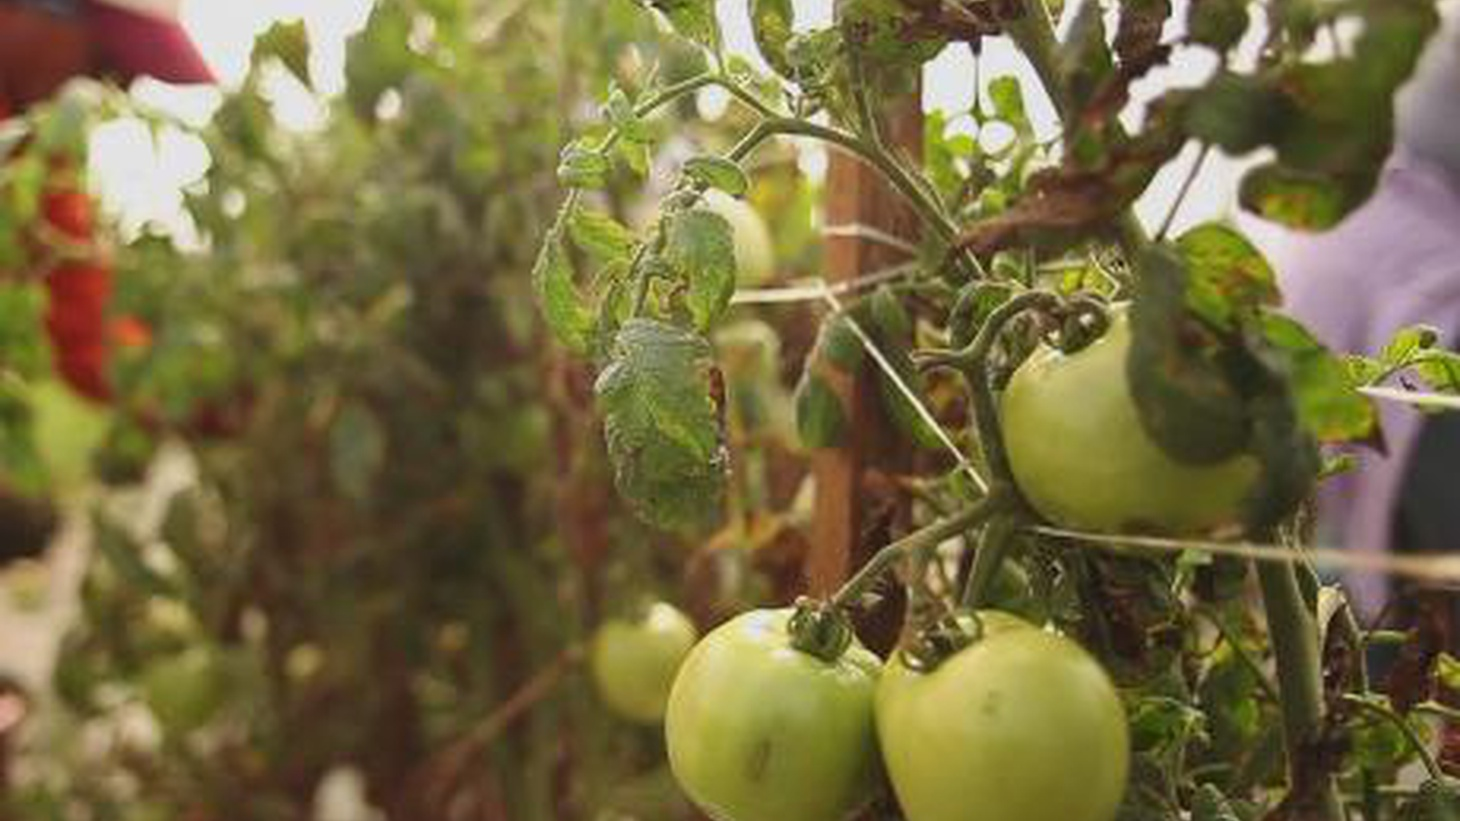 Tomato pickers in Florida have forged partnerships with major corporations to pressure growers to treat workers more humanely. Now Walmart has signed on to the program.